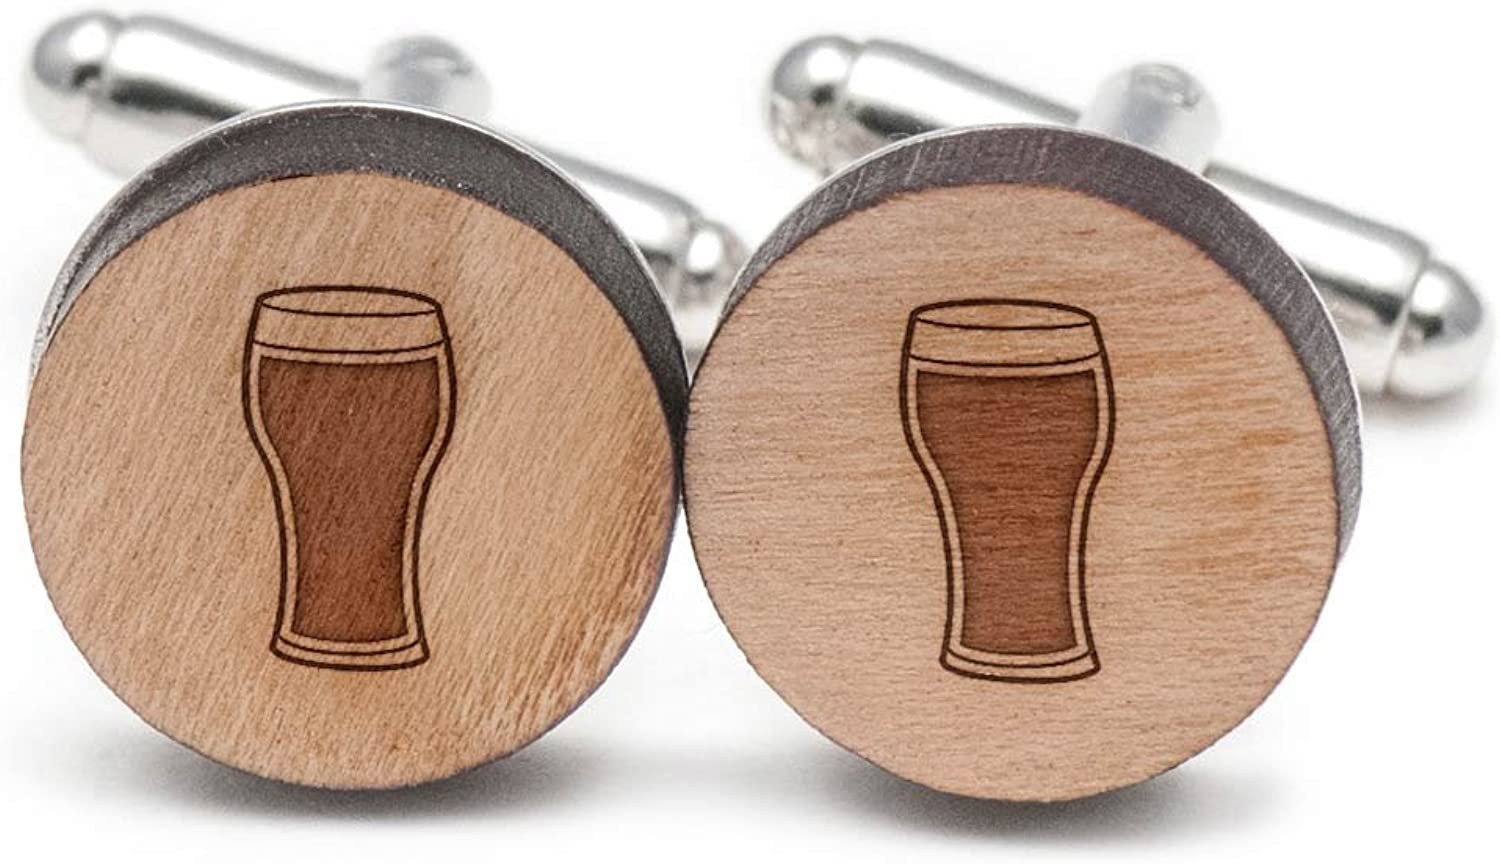 Imperial Ale Cufflinks, Wood Cufflinks Hand Made in the USA